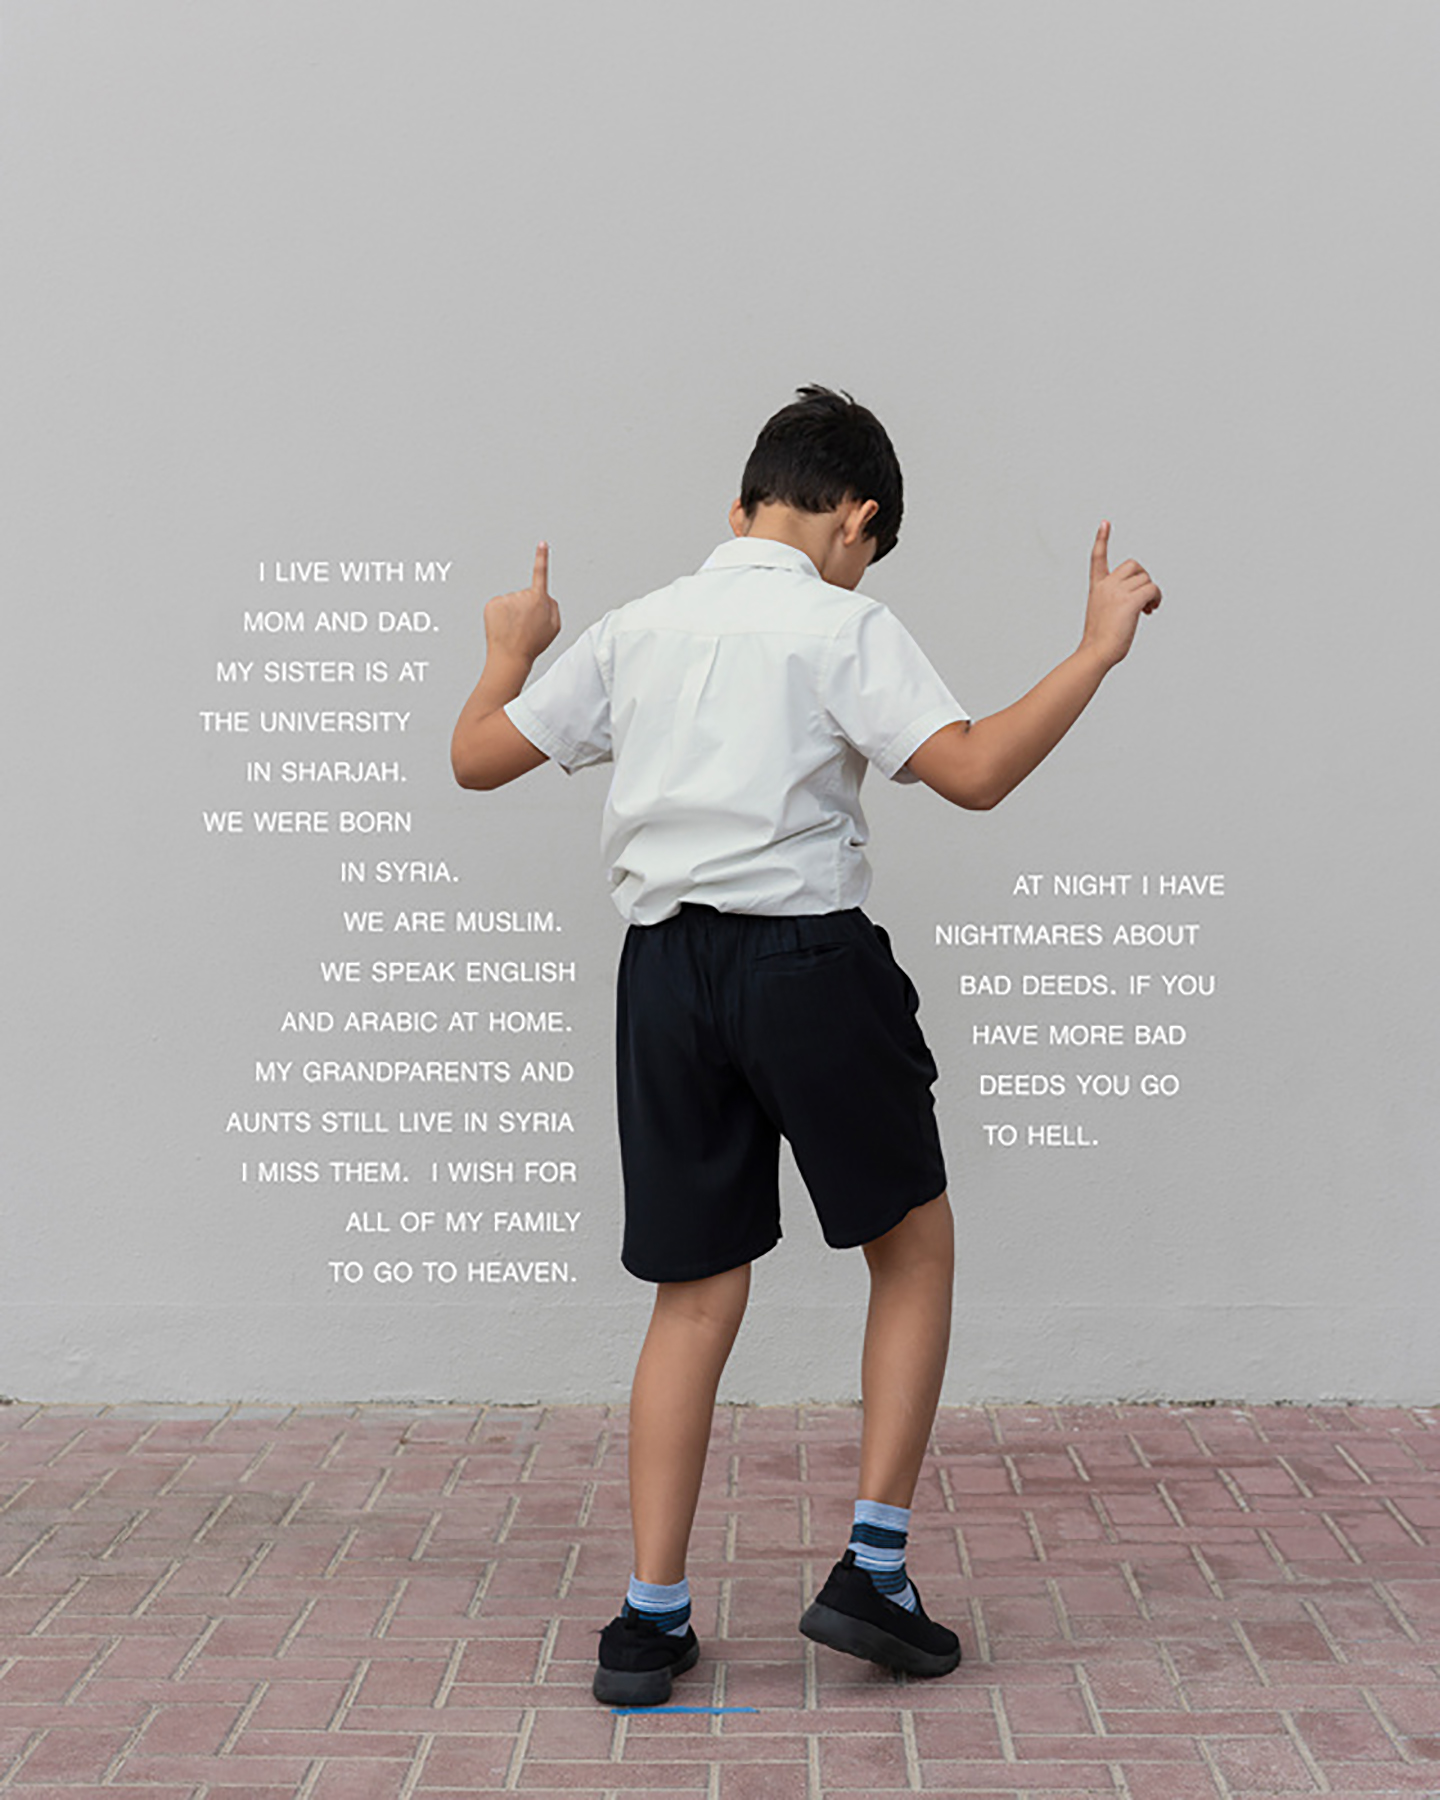 Fourth Grade - To Hell (Dubai: Public School), 25 x 20 inches / 63.5 x 50.8 cm, archival pigment print, edition 1/5, 2019